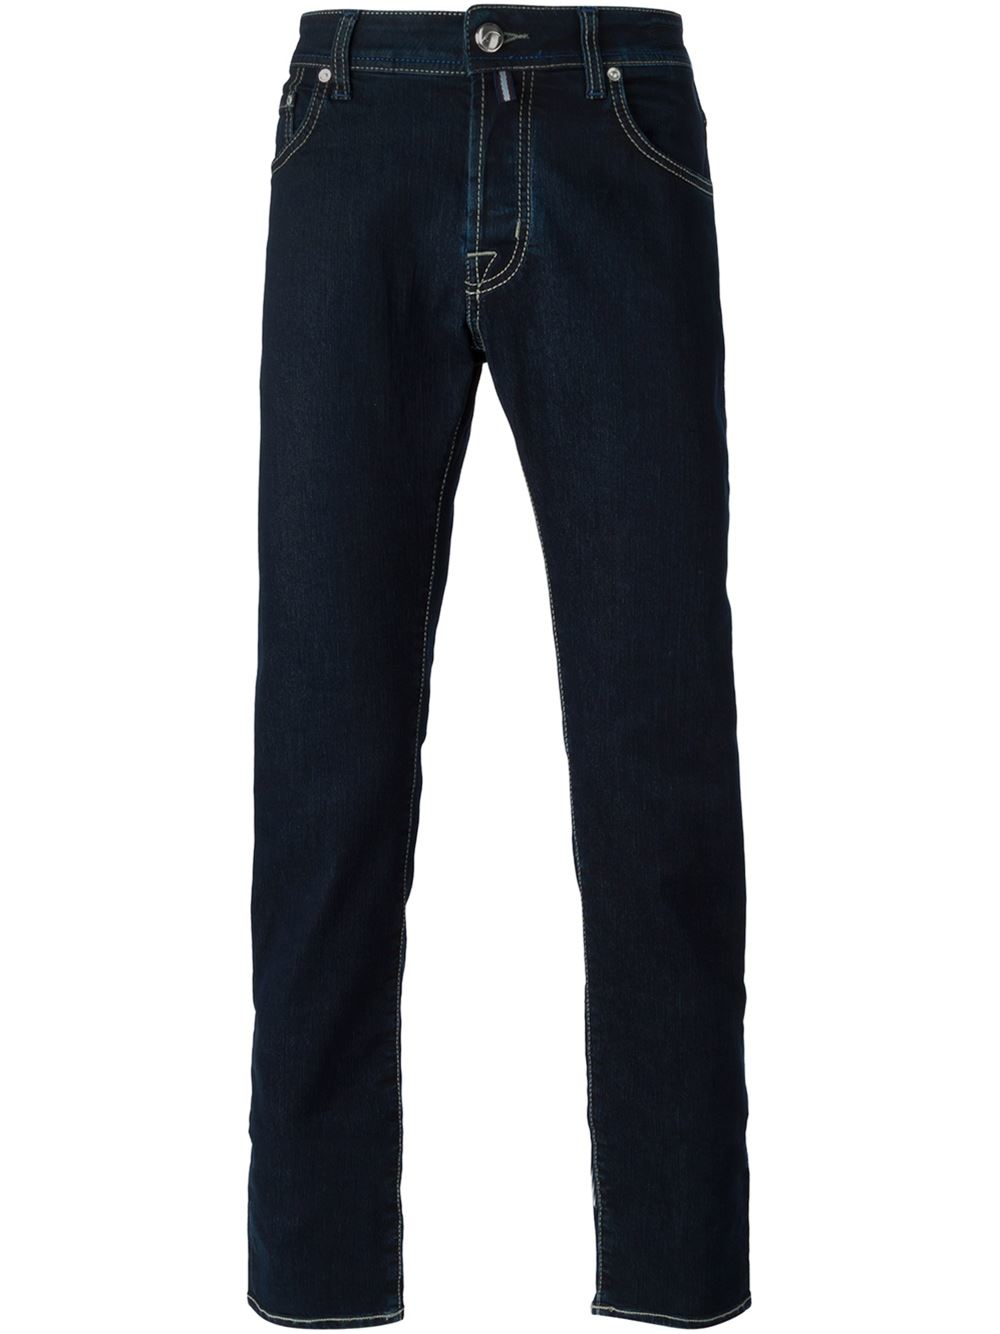 jacob cohen straight leg jeans in blue for men lyst. Black Bedroom Furniture Sets. Home Design Ideas